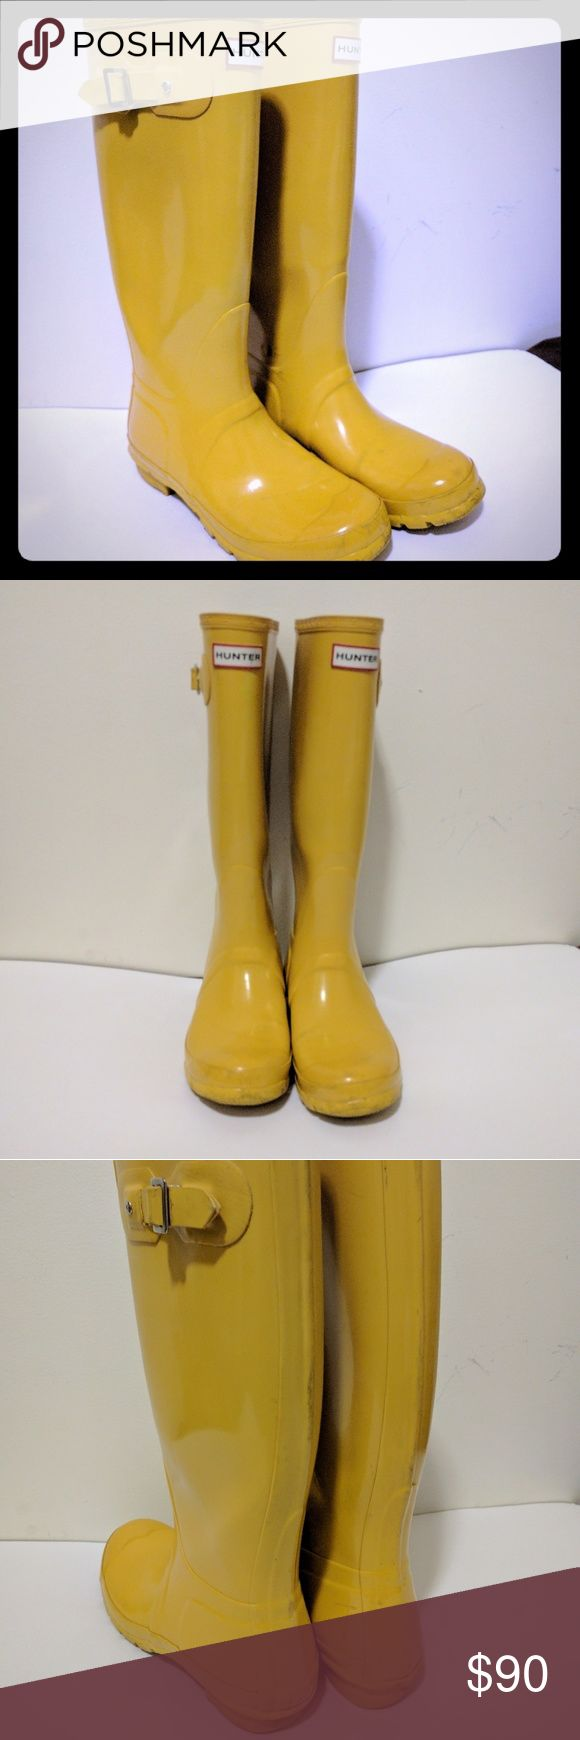 🎉CLEARANCE🎉 Hunter Rain Boots Used pair of excellent Hunter boots. They are still in great shape and have a long life ahead in many puddles, do please note the scuff marks on the inner ankle. Some scratches and signs of wear on exterior, slight wear on sole. Hunter Boots Shoes Winter & Rain Boots